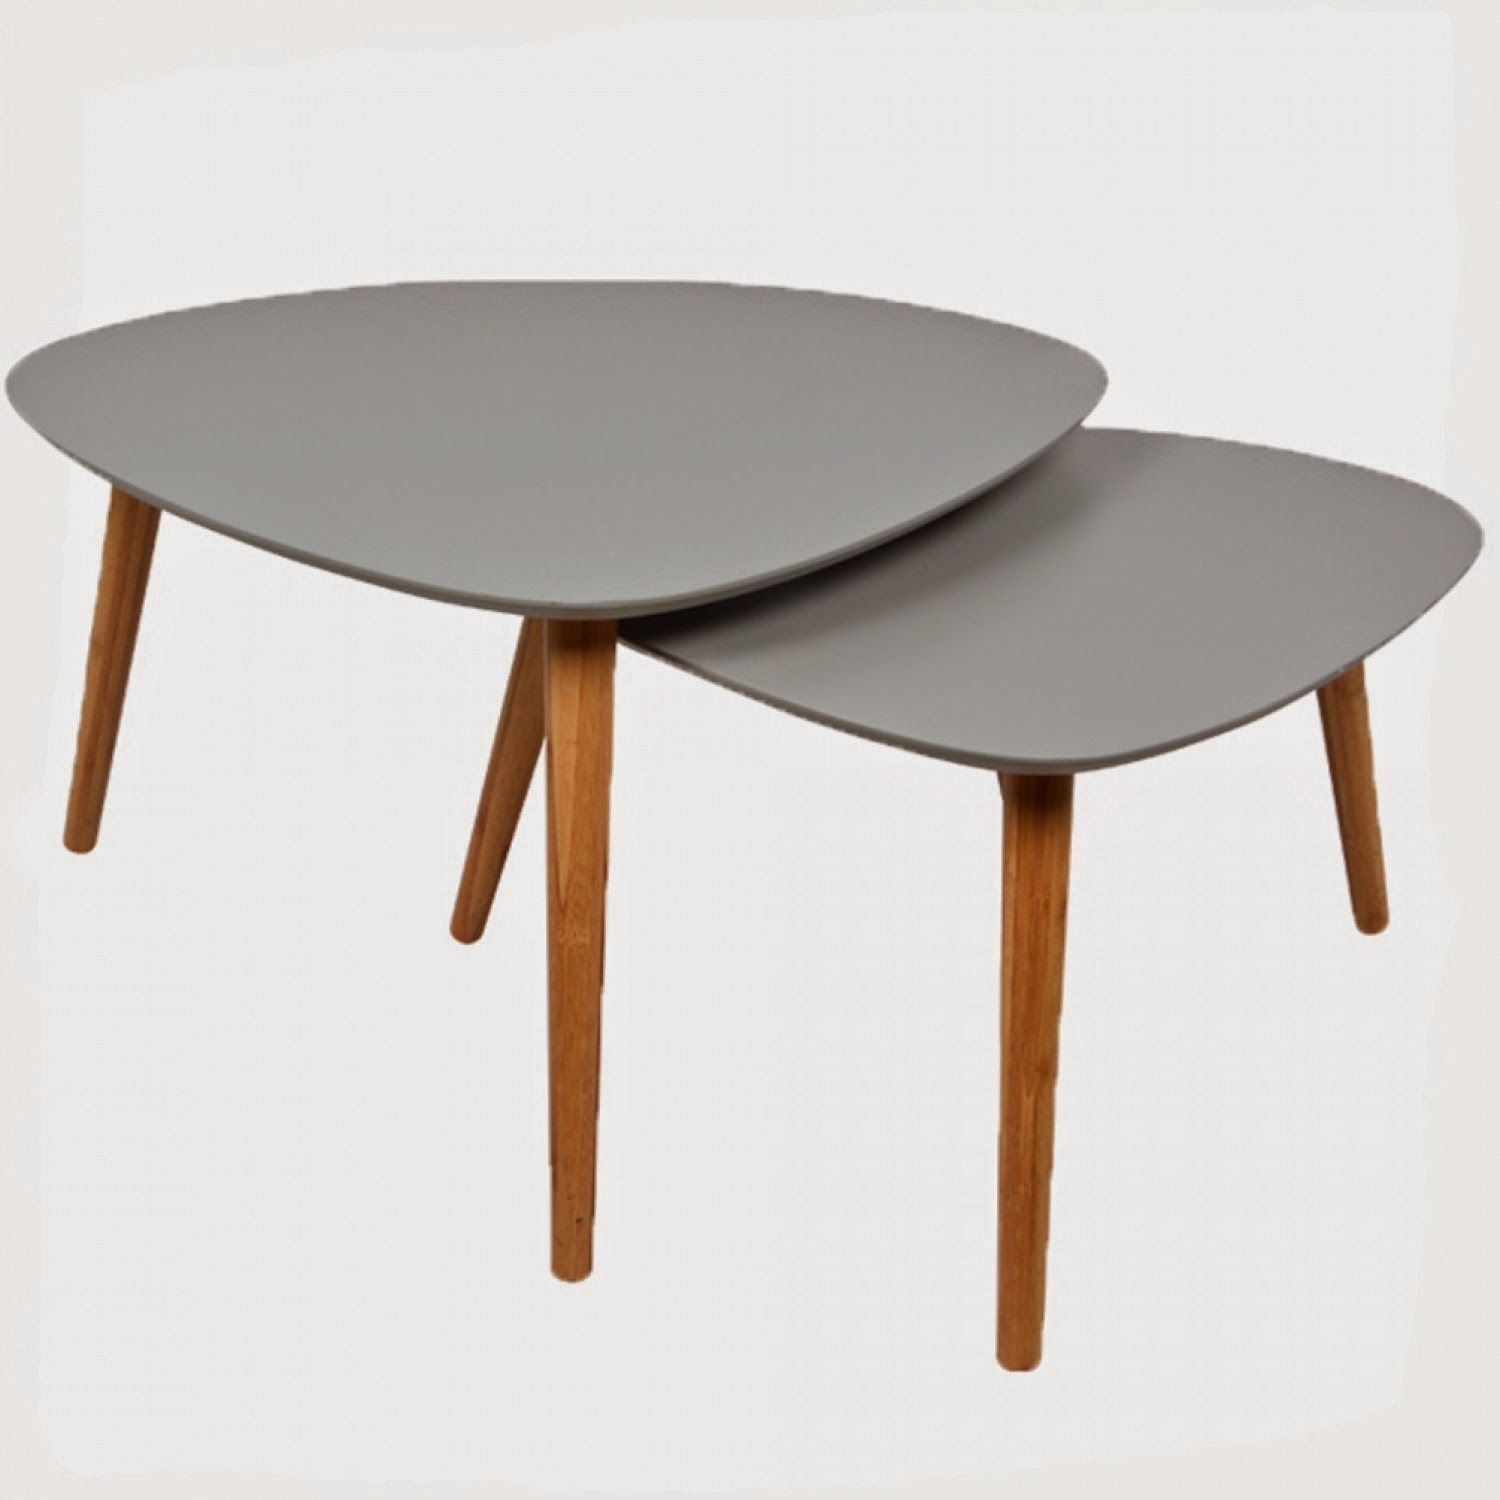 Les tables basses gigognes caract rielle bloglovin - Tables basses gigognes ...